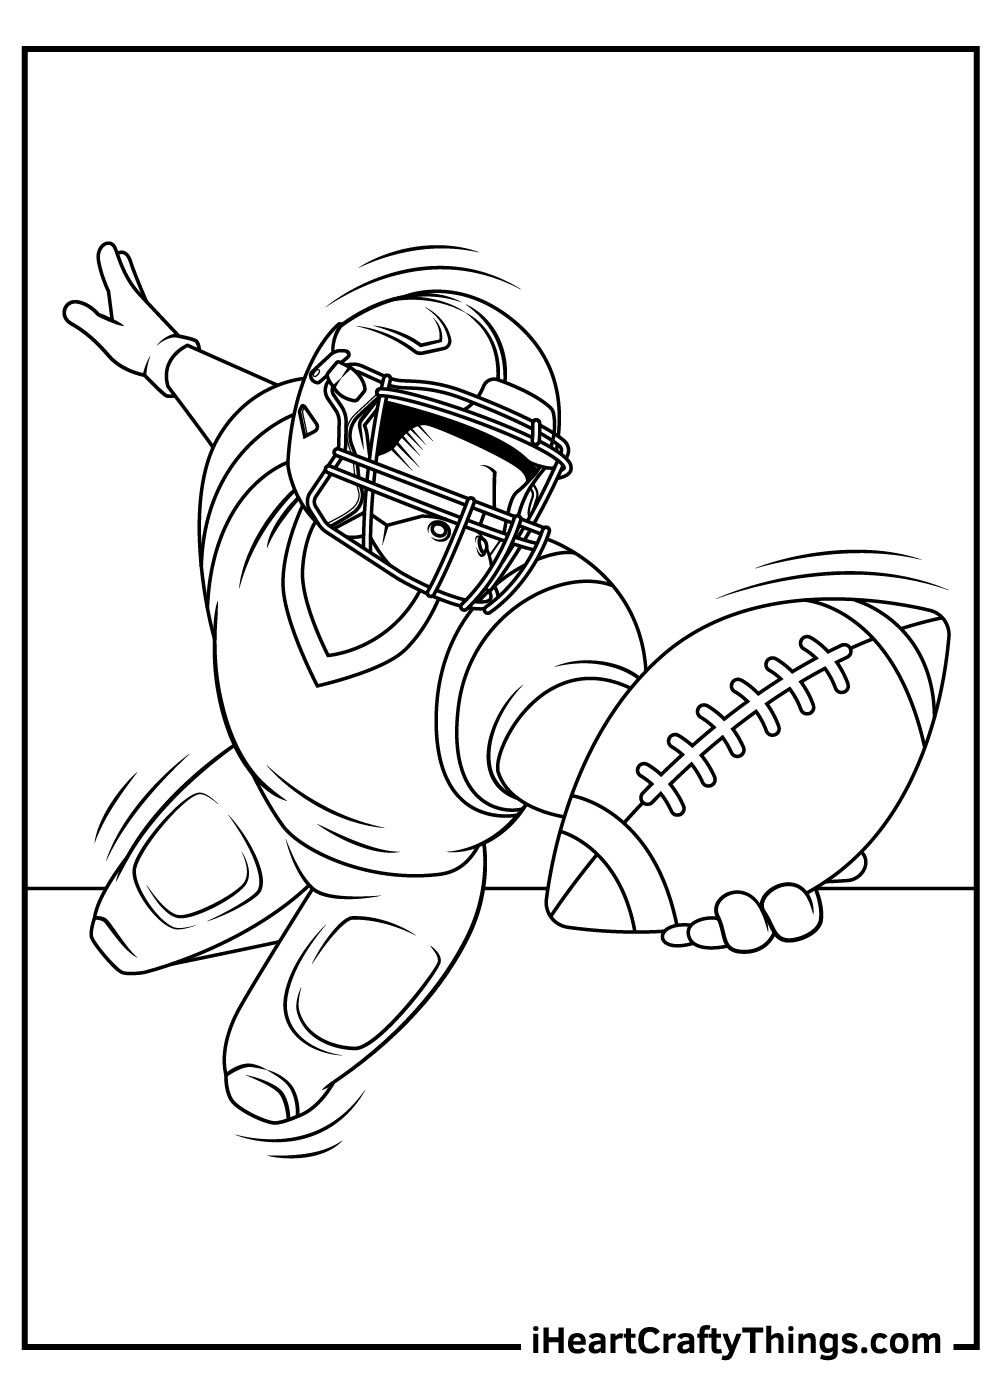 viking NFL coloring pages printable